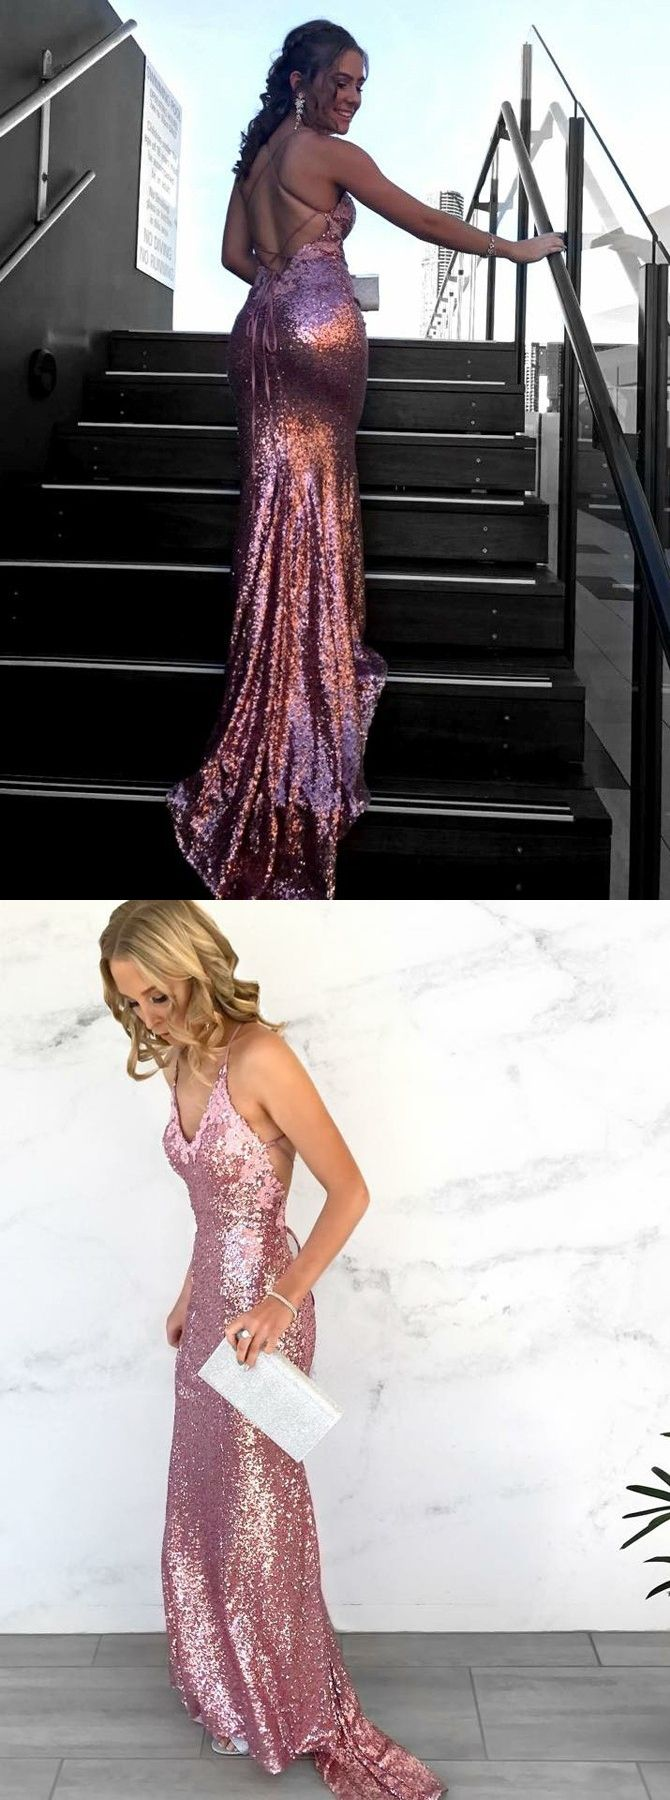 Pin on Prom Dresses Sparkly